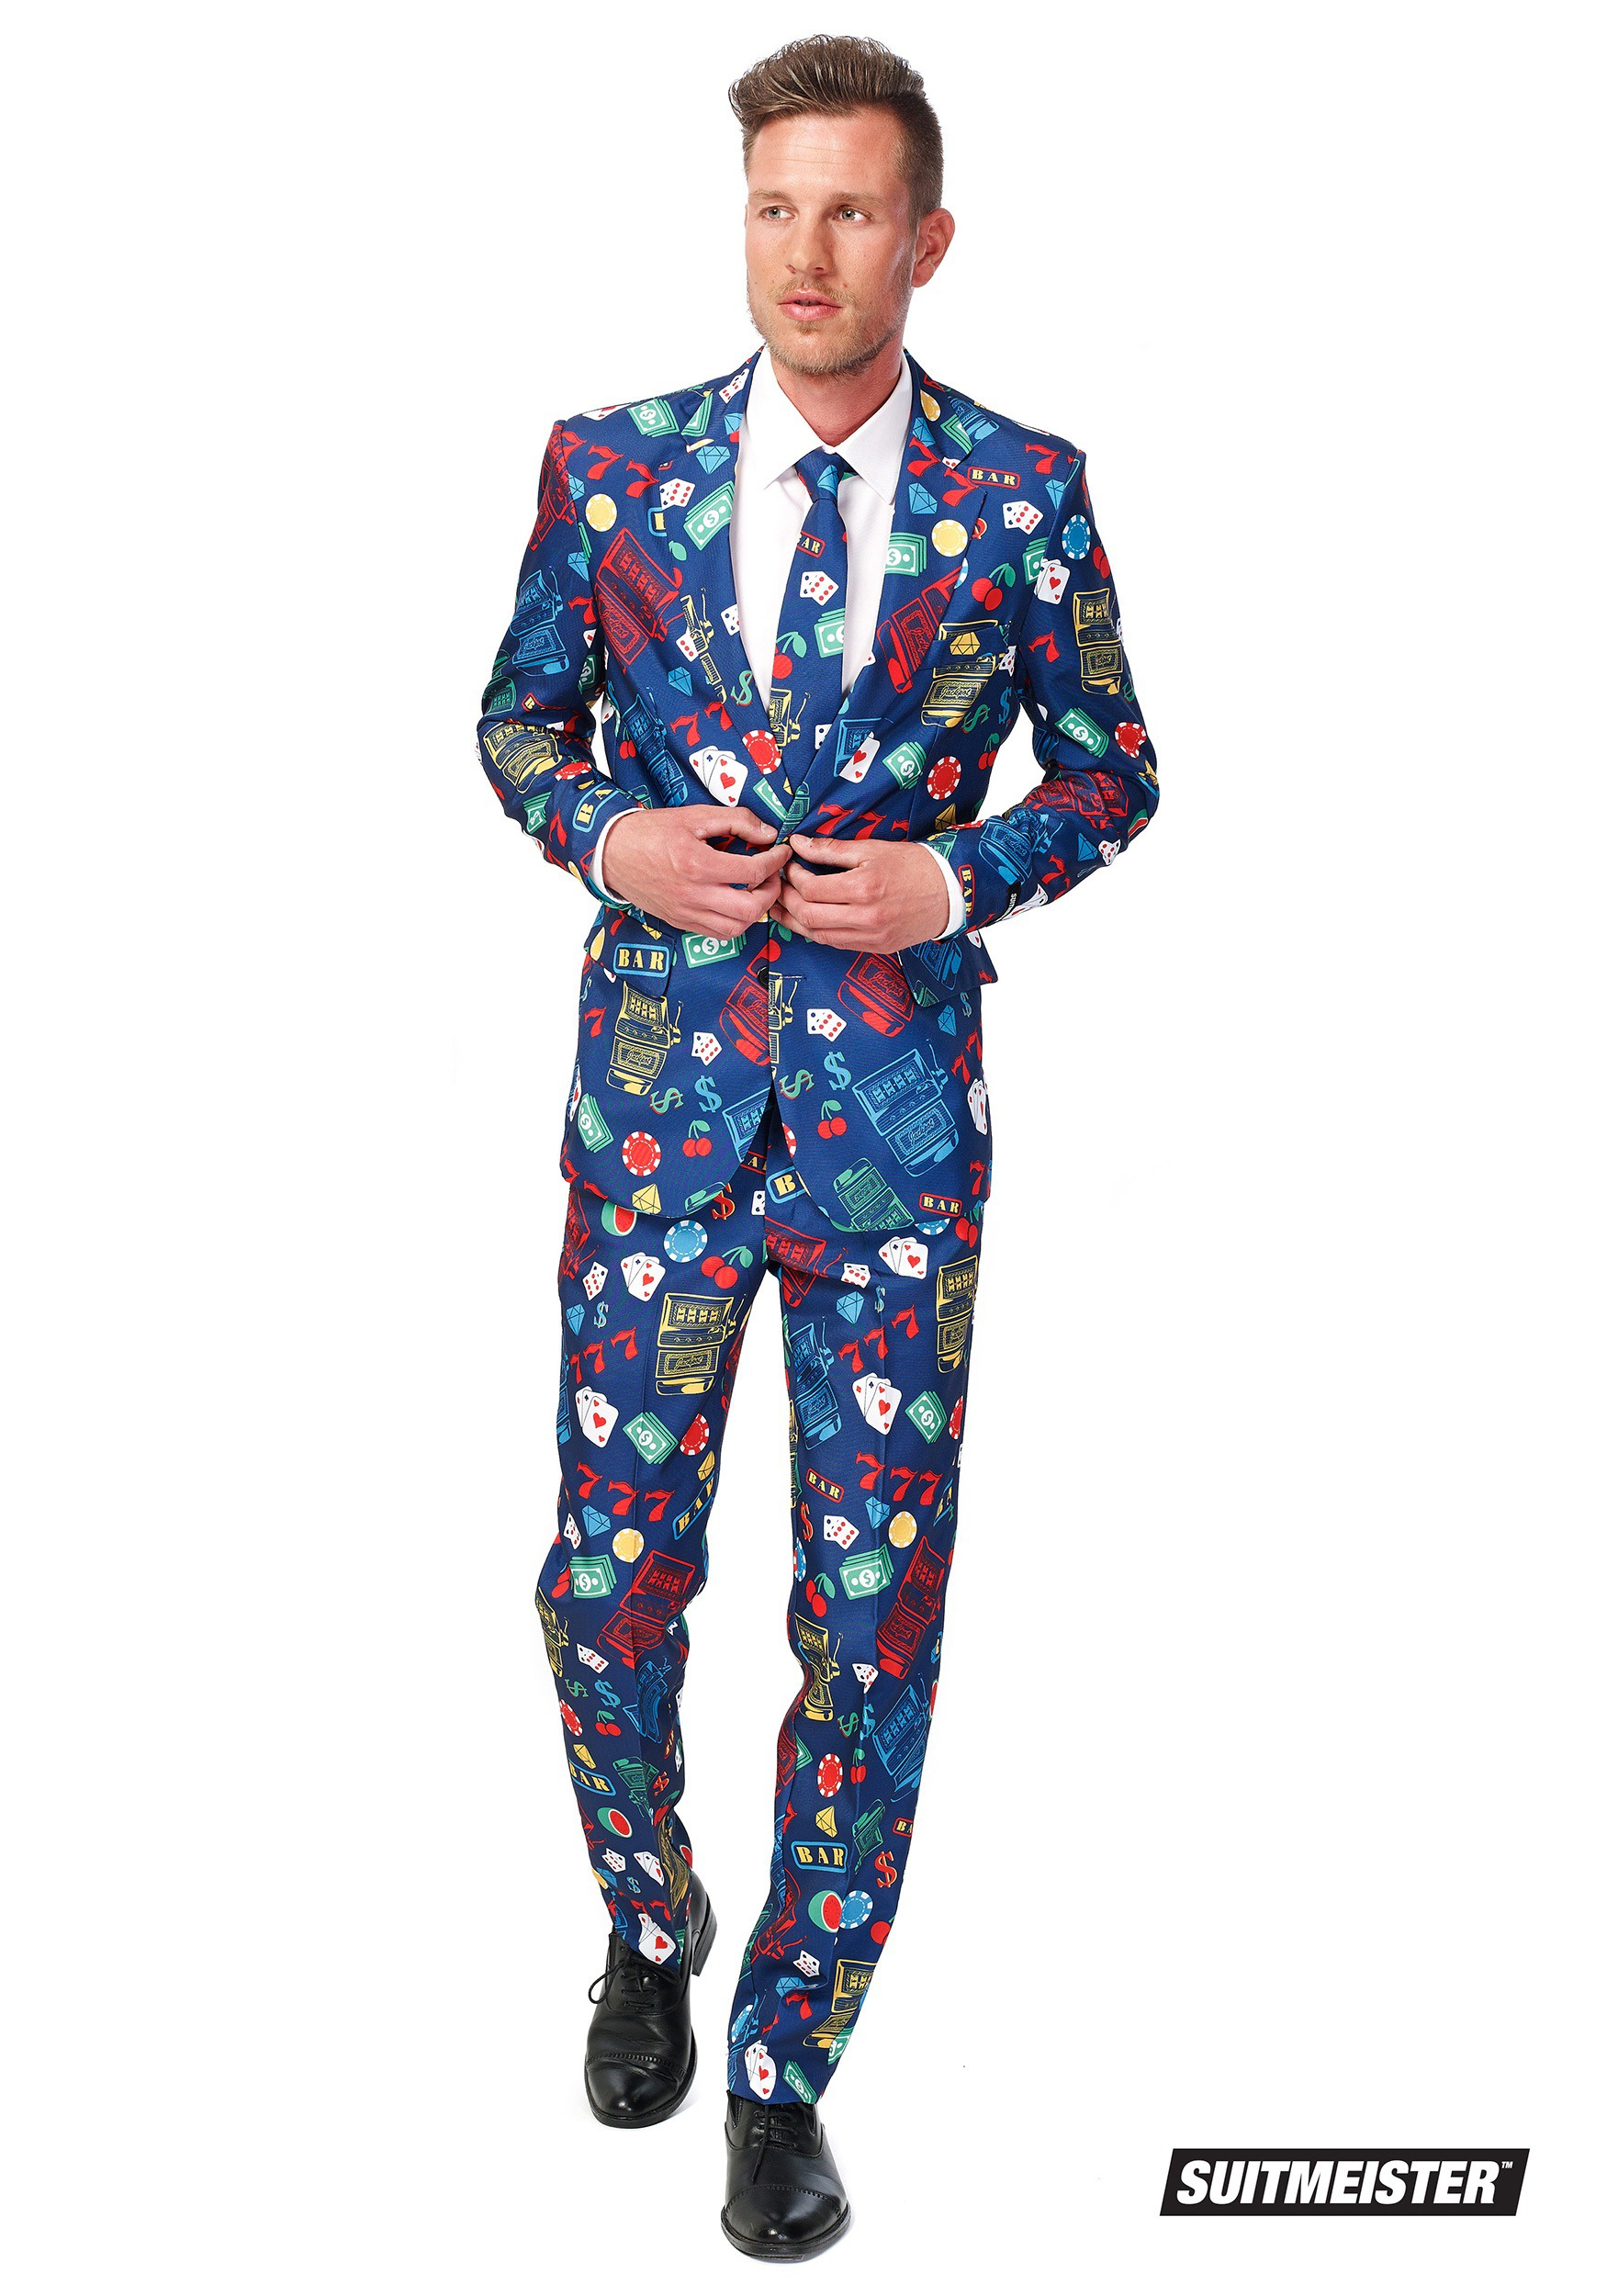 find local tuxedos, tuxedo rental and wedding suits in Las Vegas, NV